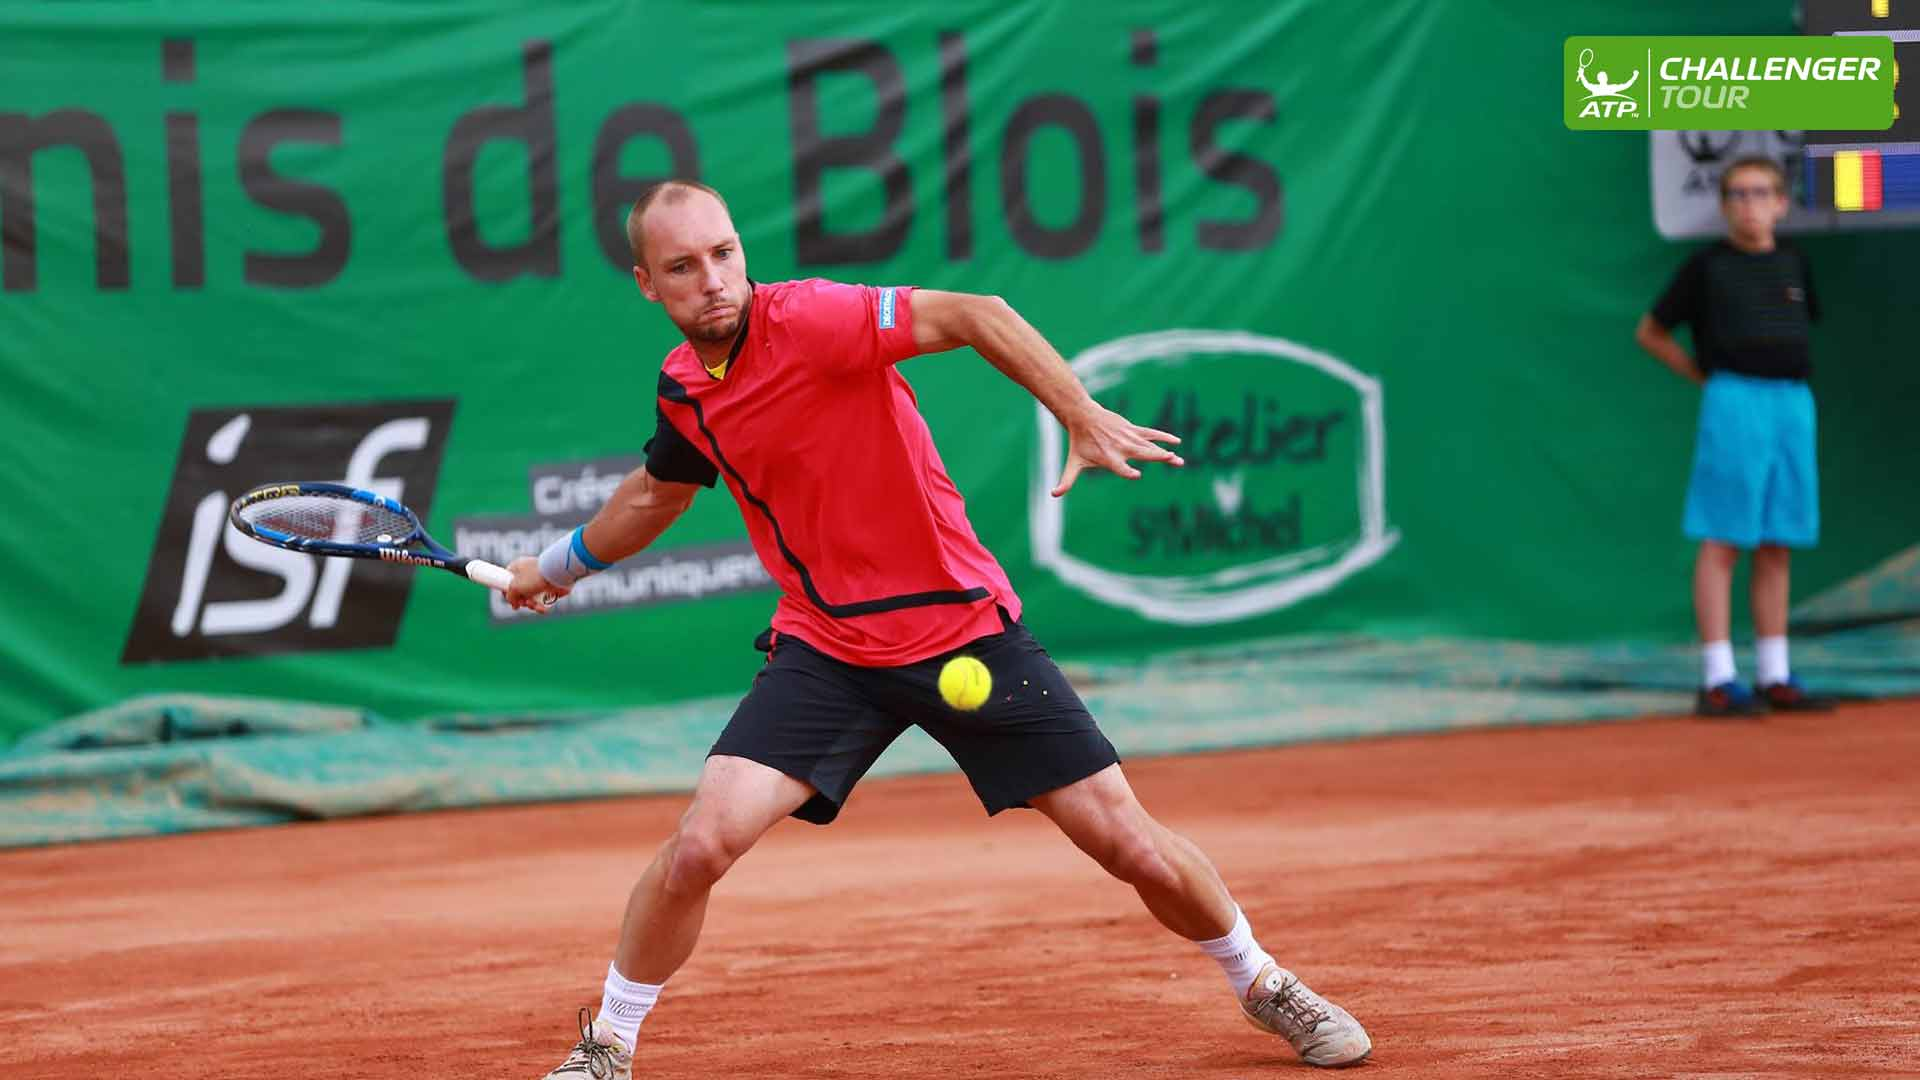 Steve Darcis competes at the ATP Challenger Tour event in Blois.